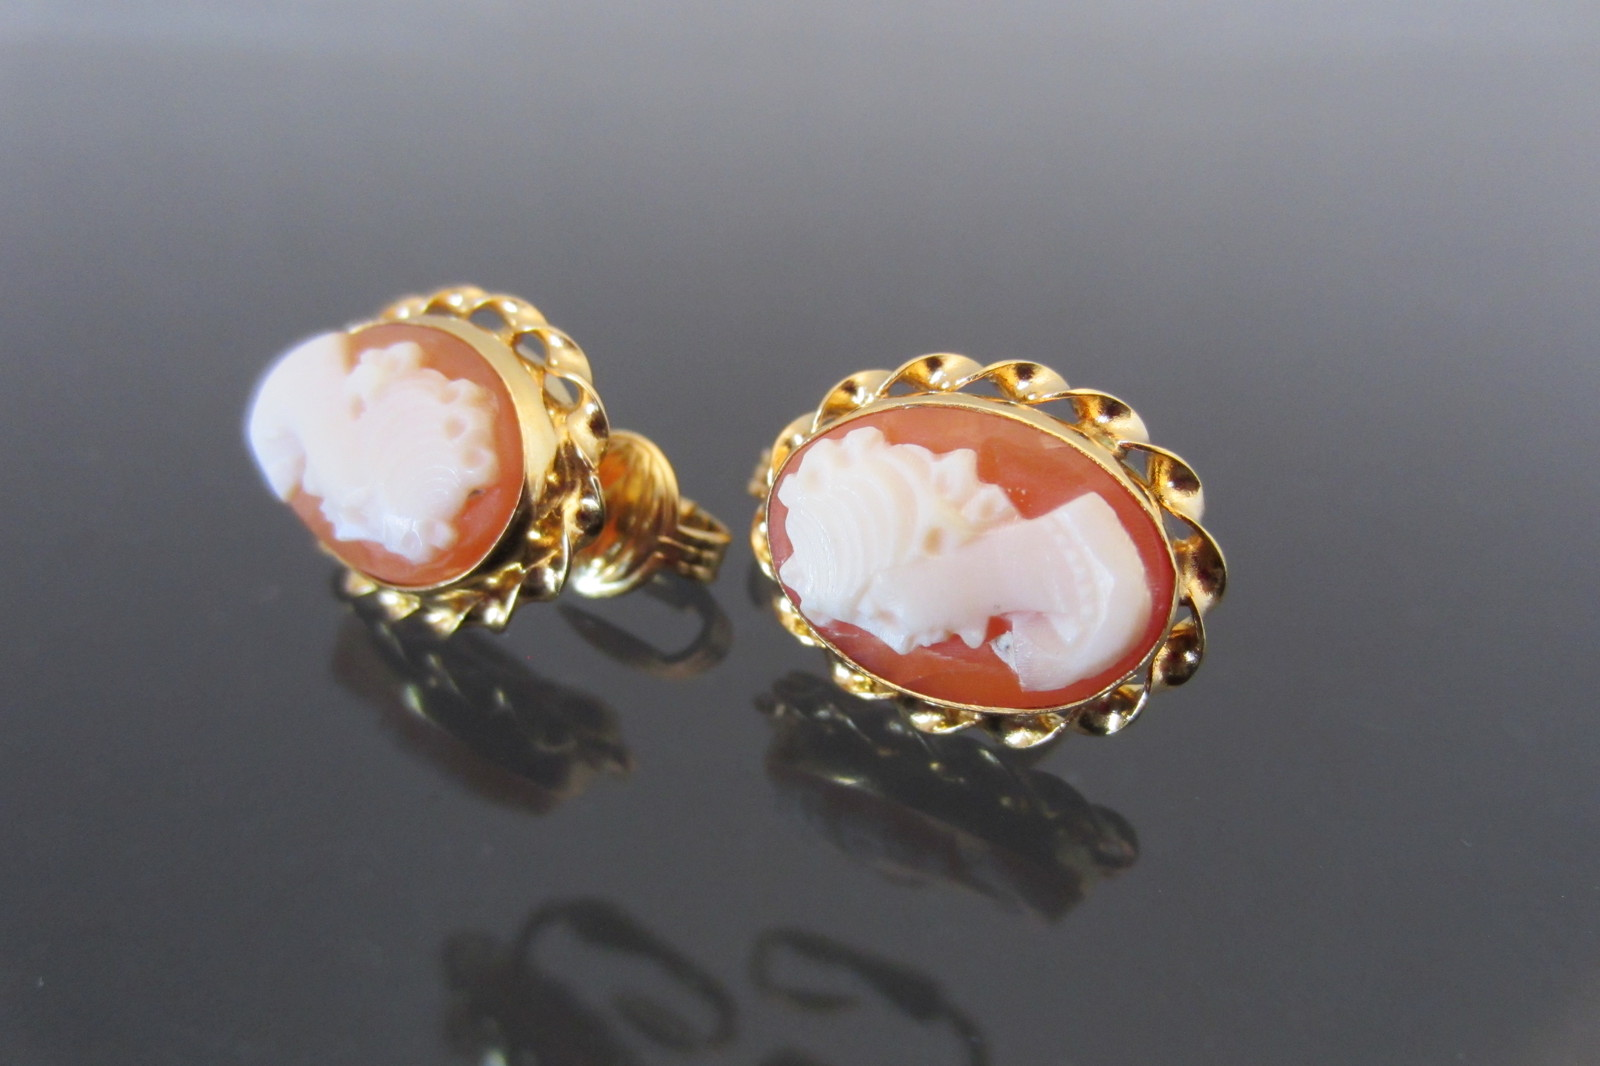 Vintage 14K Solid Yellow Gold Shell Cameo Clip on Earrings